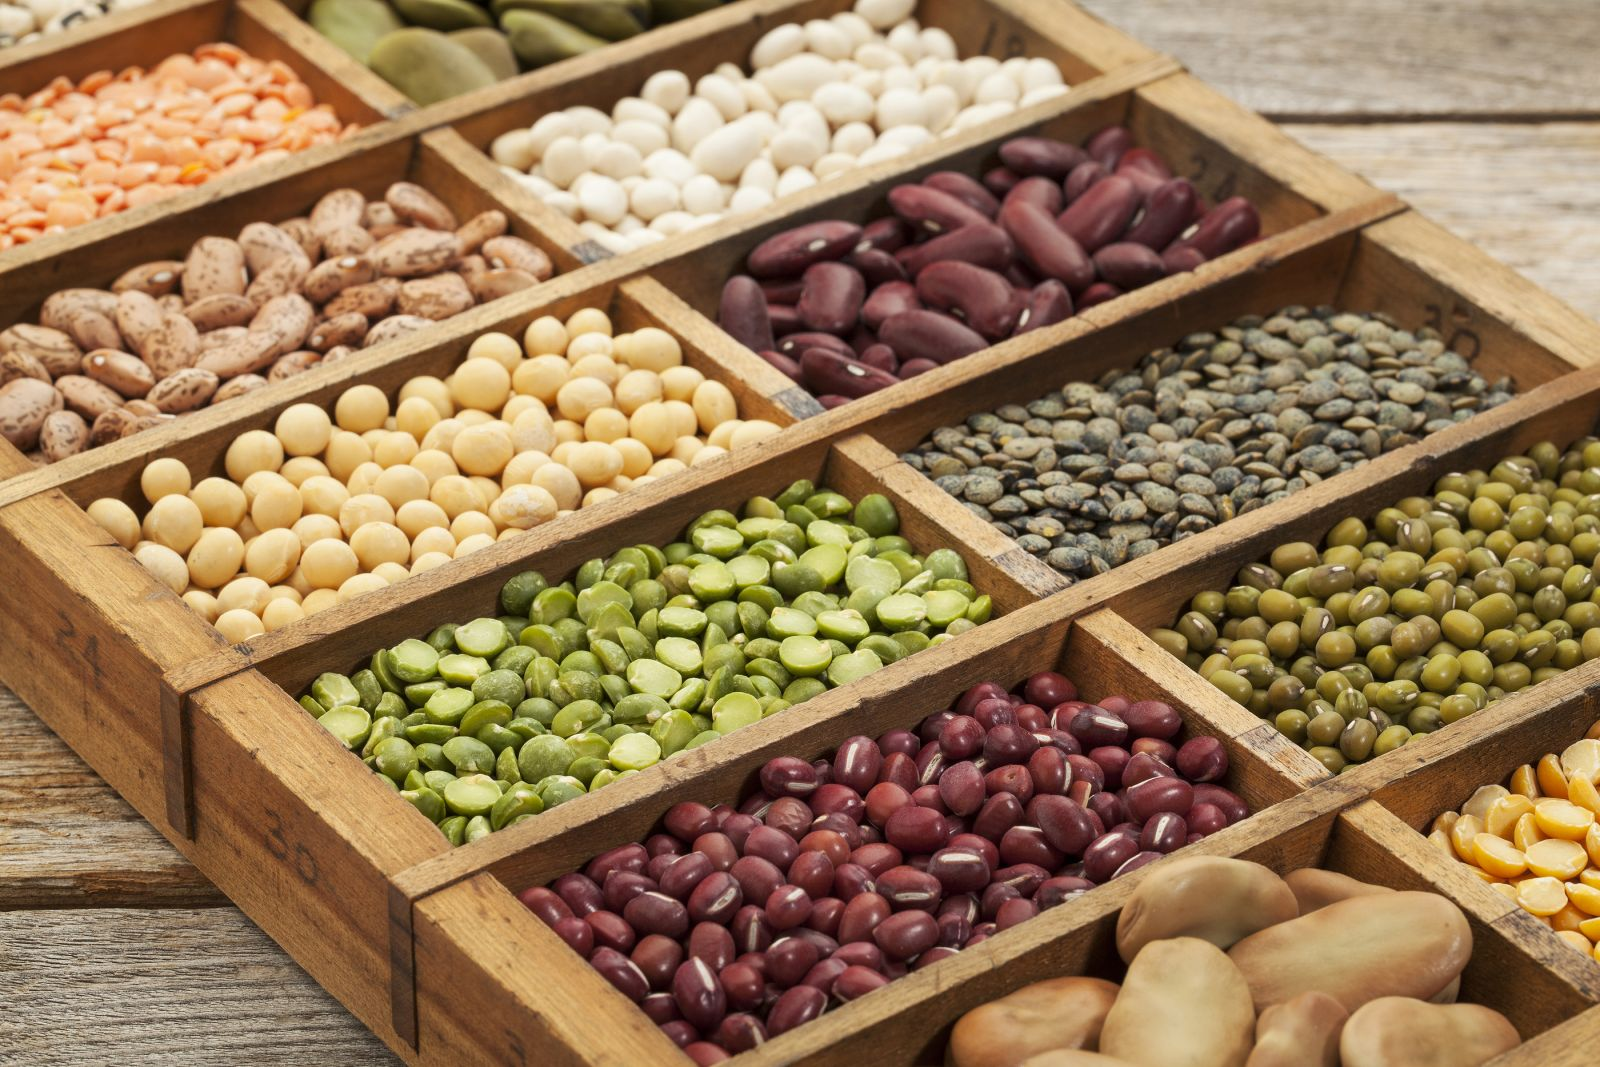 Plant-based diet: Nuts, seeds, and legumes can help get ...